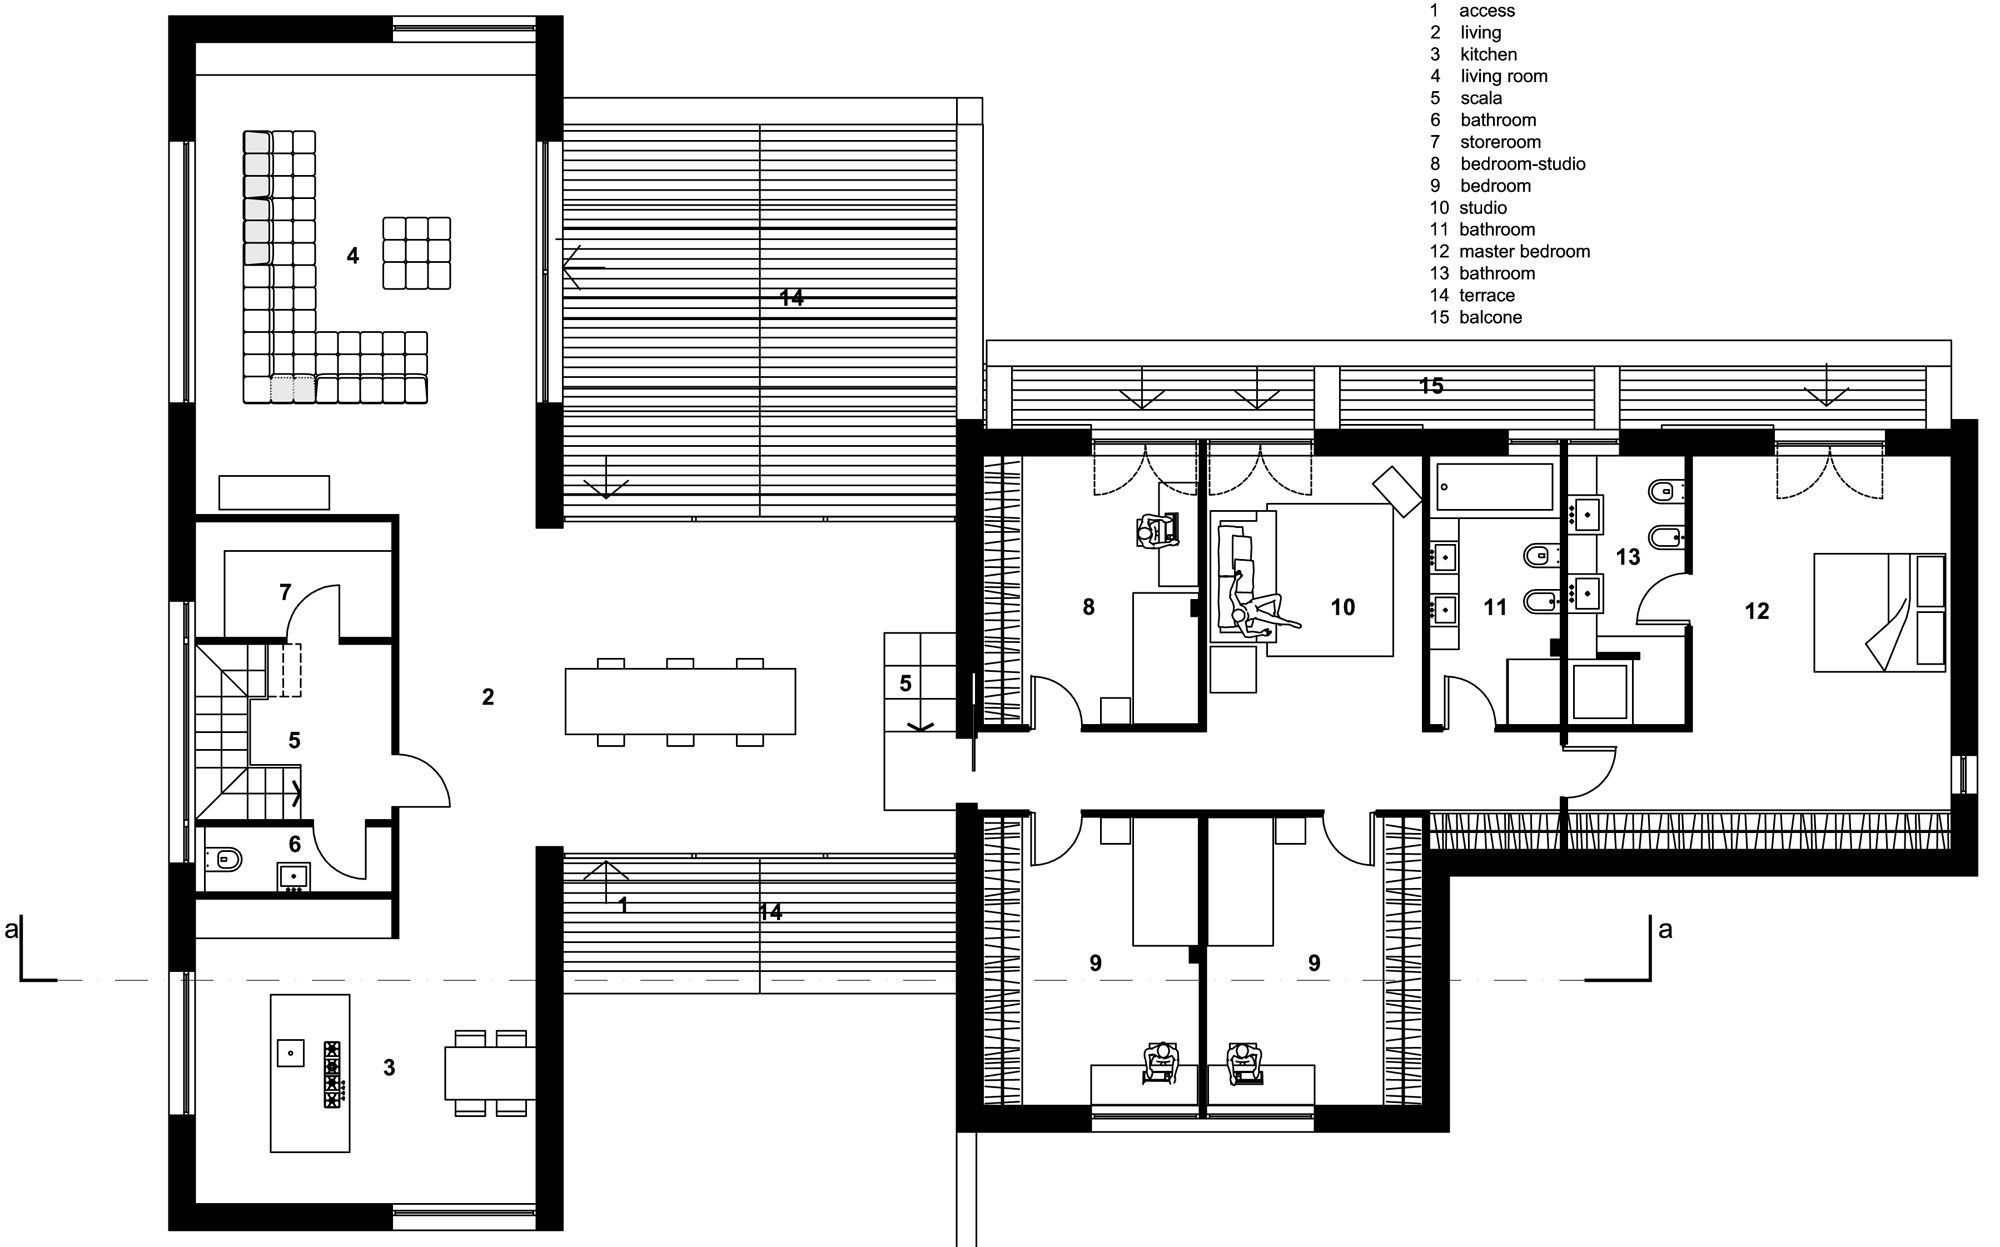 House Mm By Federico Delrosso Architects 42 Floor Plans House Plans Drawing House Plans